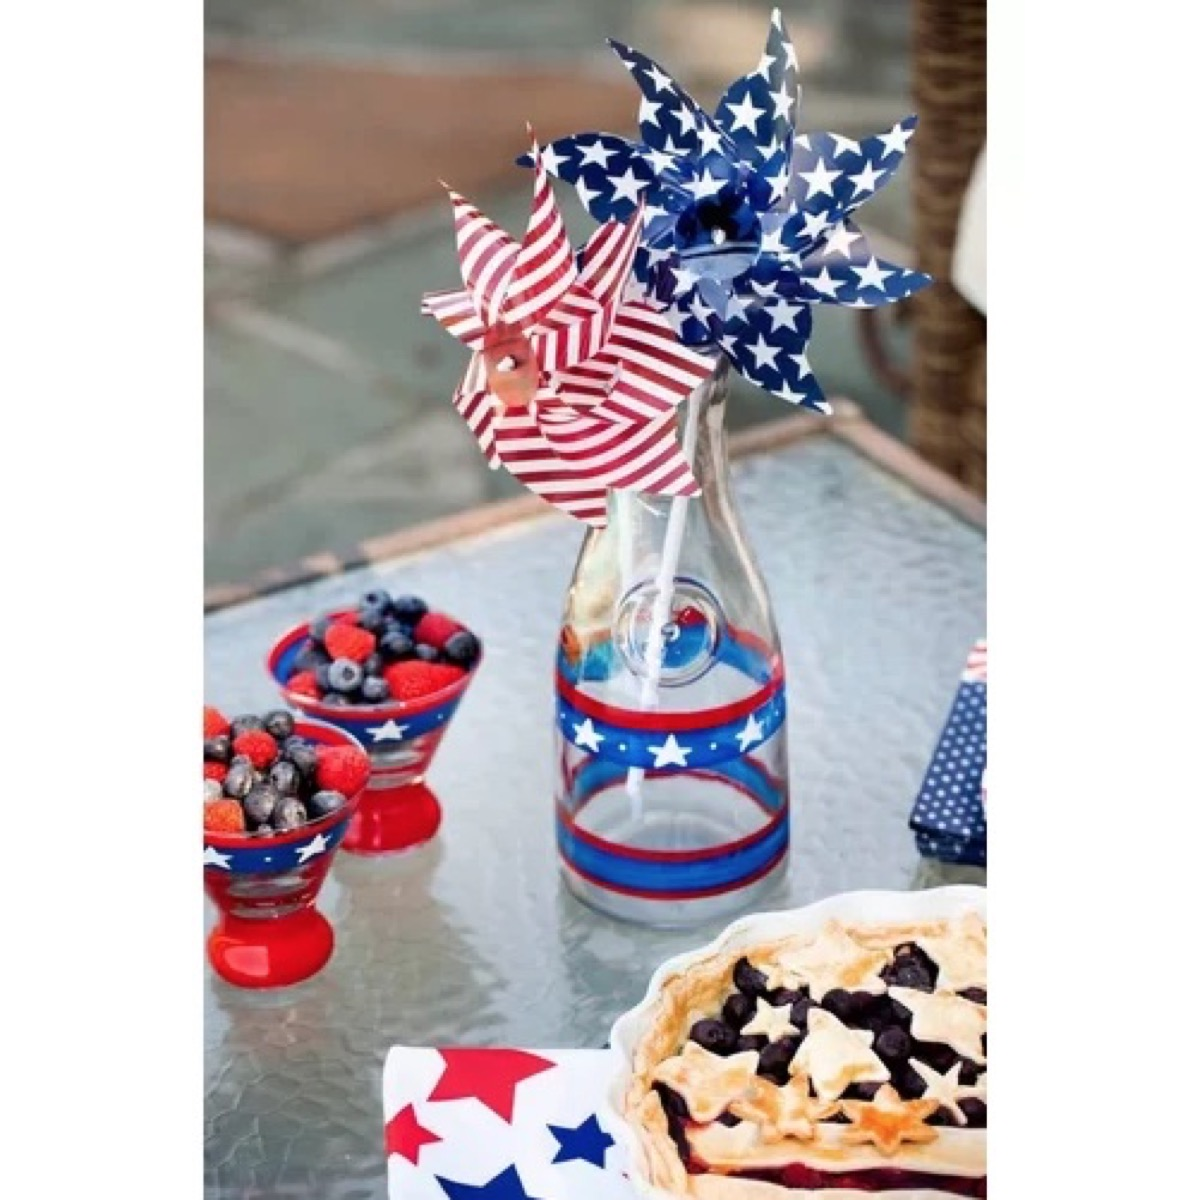 Wayfair Carafe Fourth of July Accessories